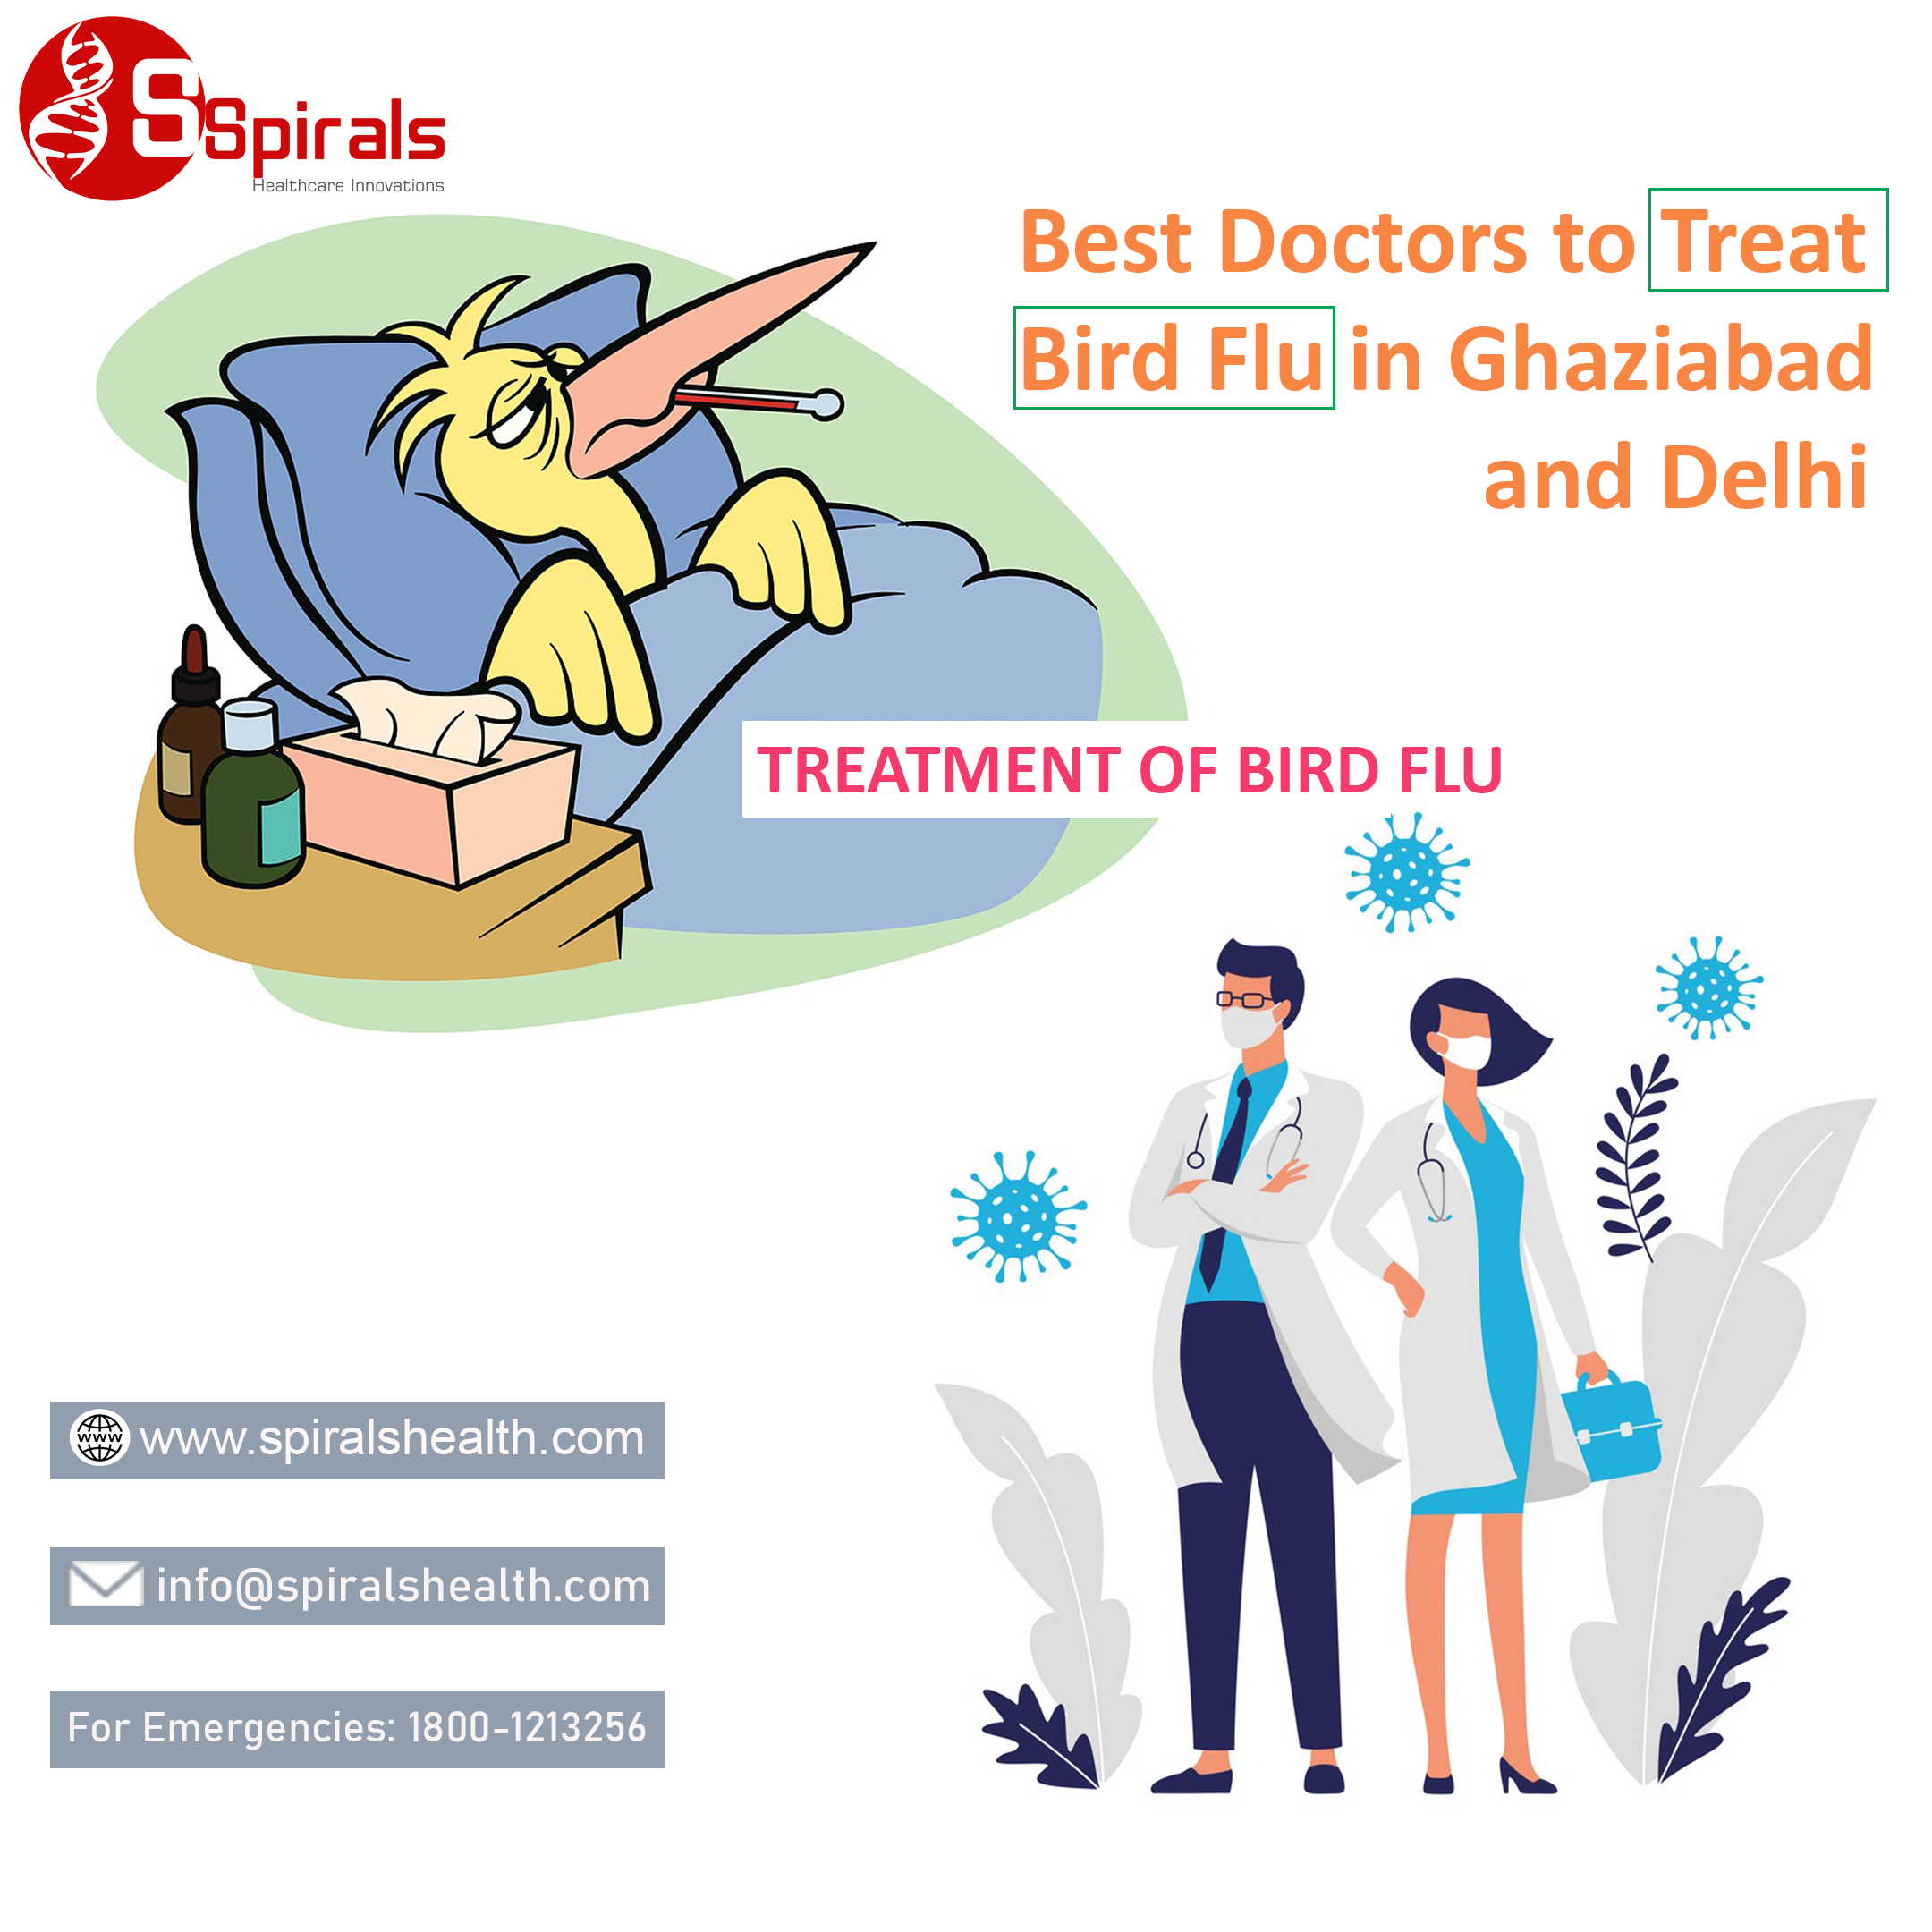 Best Doctors to Treat Bird Flu in Ghaziabad and Delhi